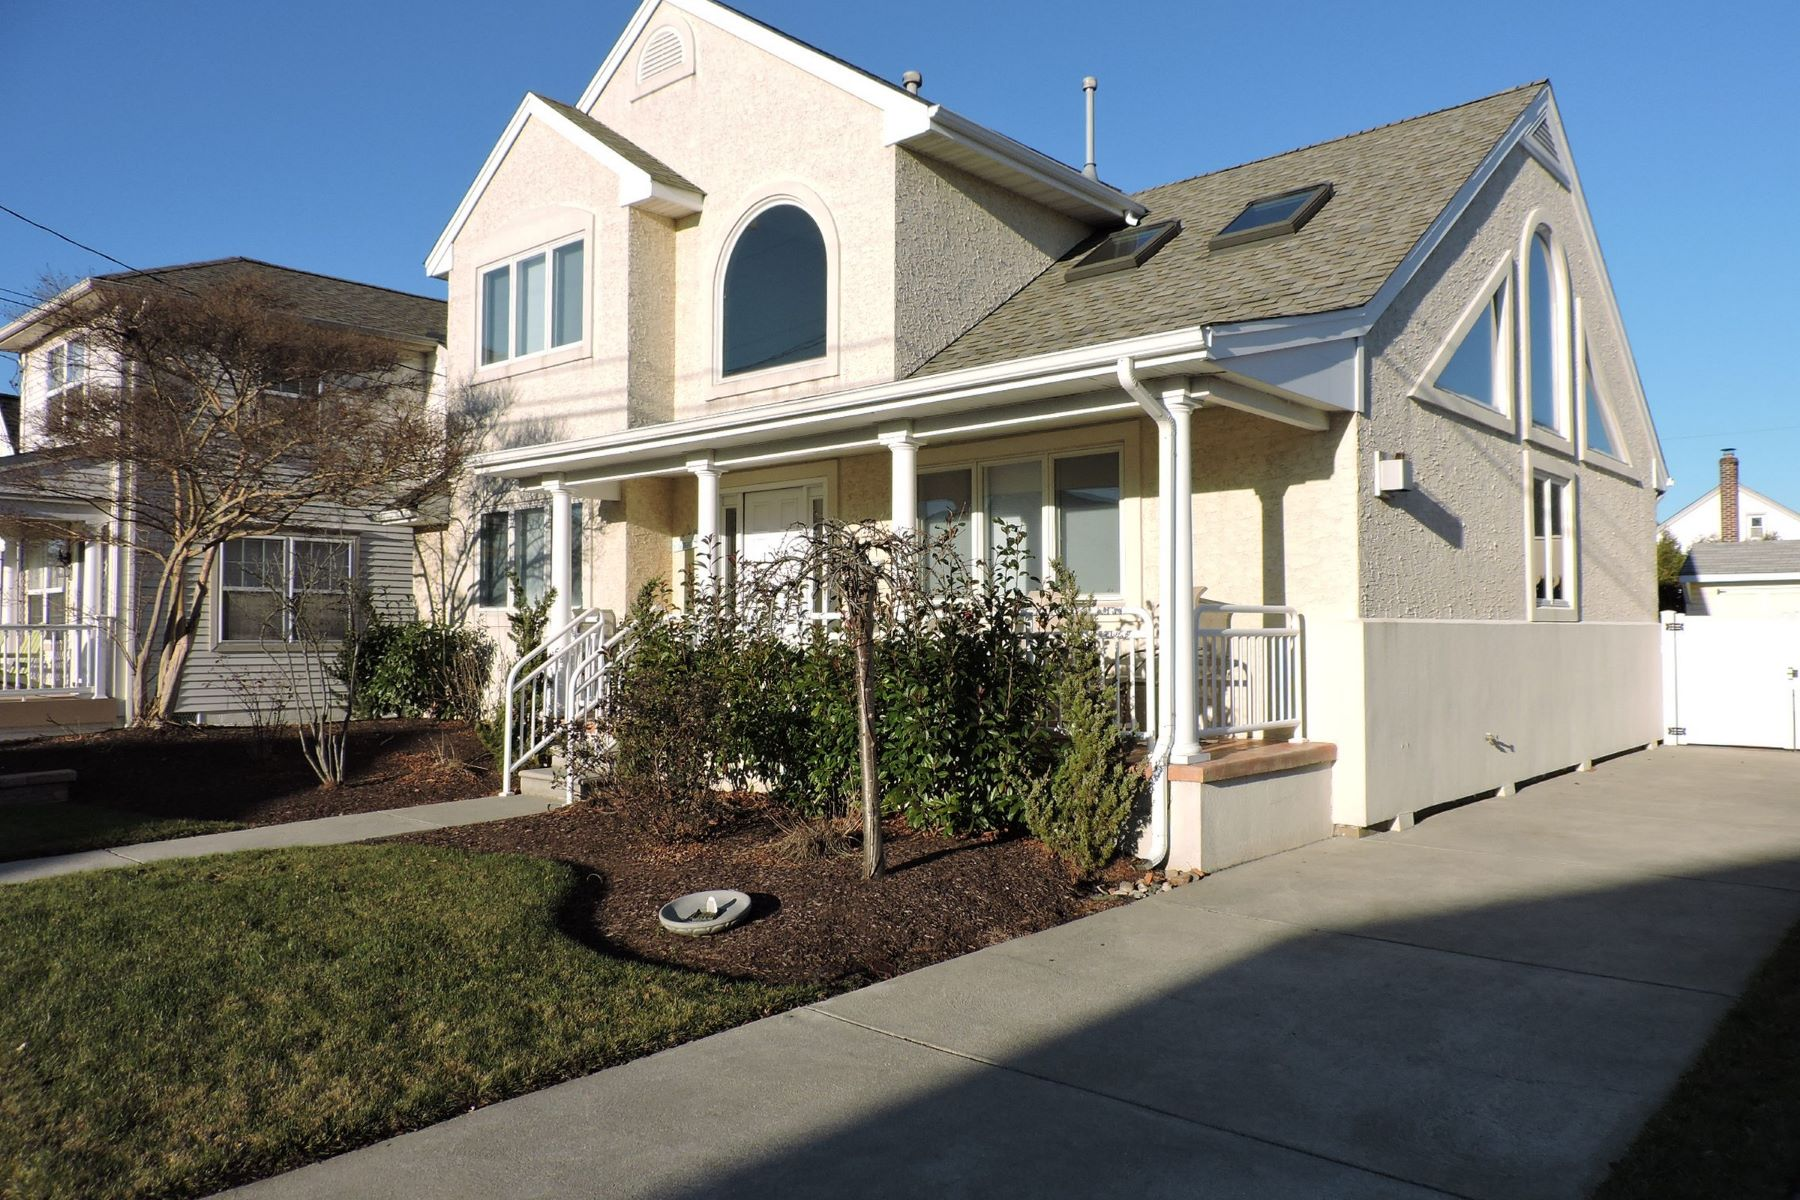 Single Family Home for Rent at 25 N Frontenac Ave 25 N Frontenac Ave AUGUST, Margate, New Jersey 08402 United States